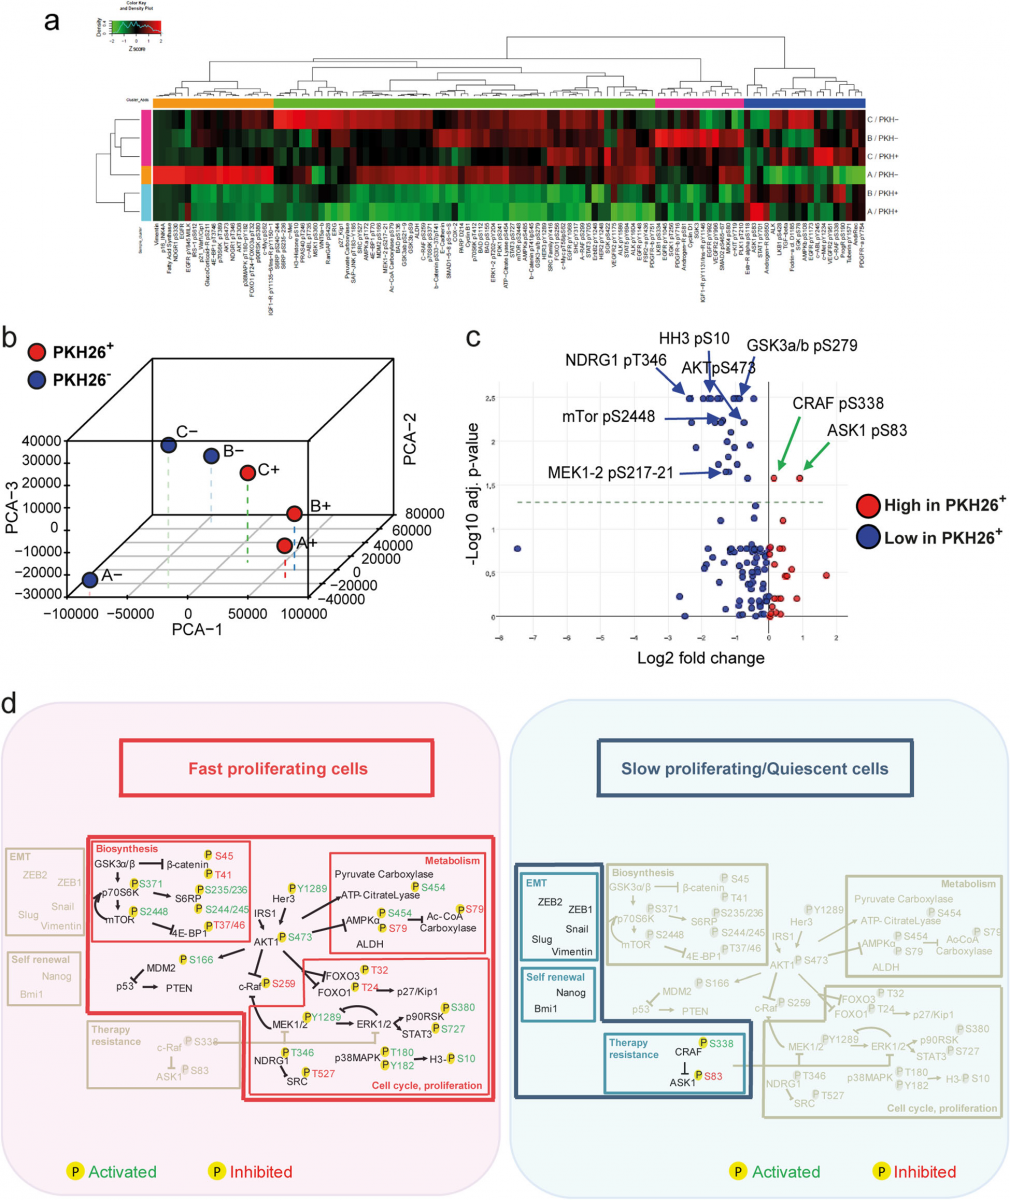 Fig. 2 Reverse-phase proteomic analysis of quiescent/slow cycling xenograft cells.